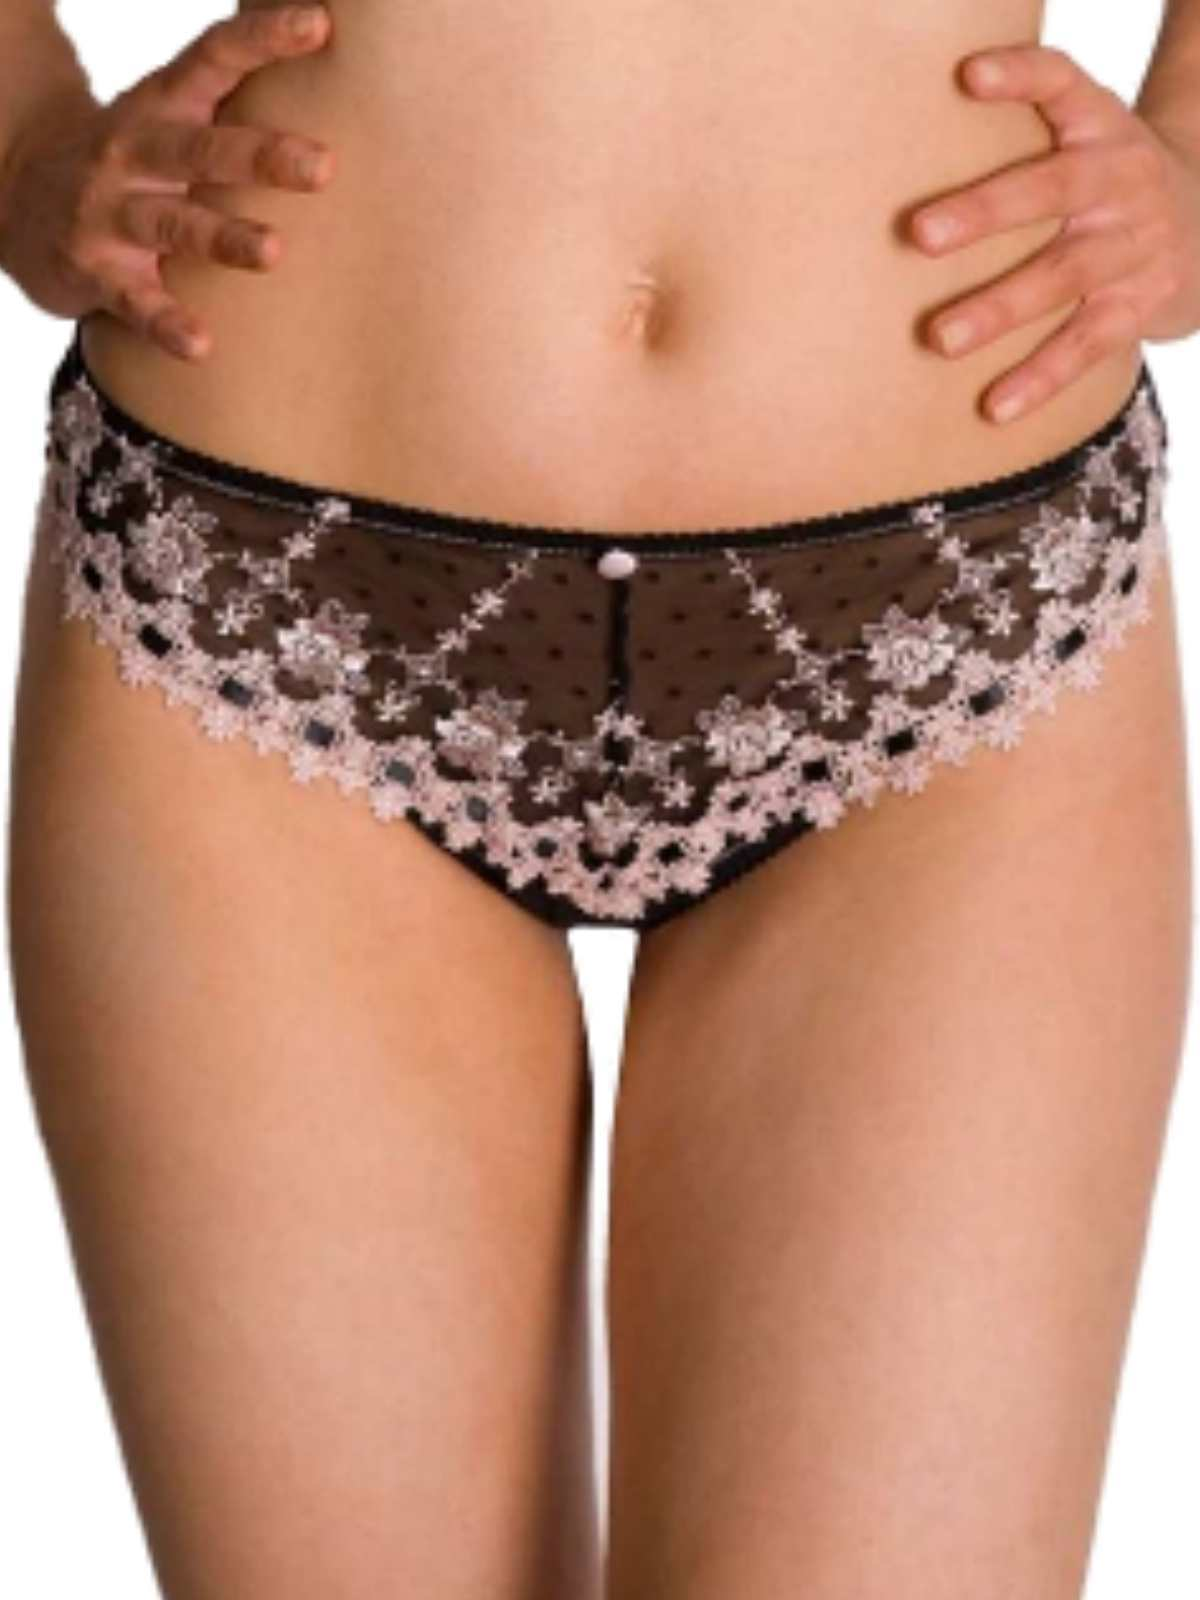 New Violet Purple Lace Tanga Thong UK 8 Ladies Sheer Knickers floral KEIA Ava